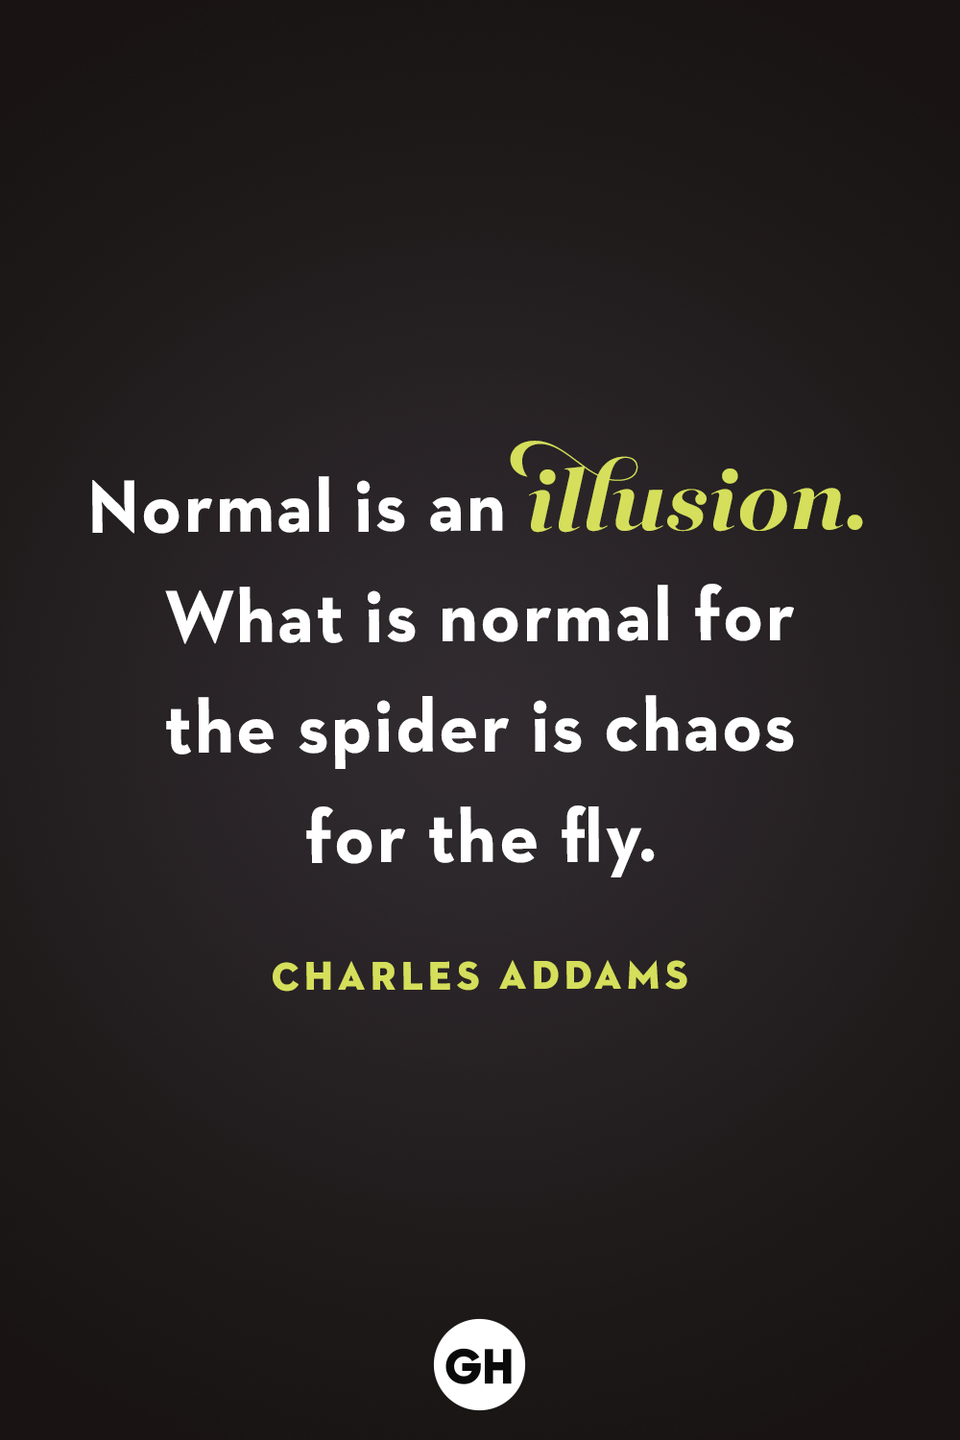 <p>Normal is an illusion. What is normal for the spider is chaos for the fly.</p>